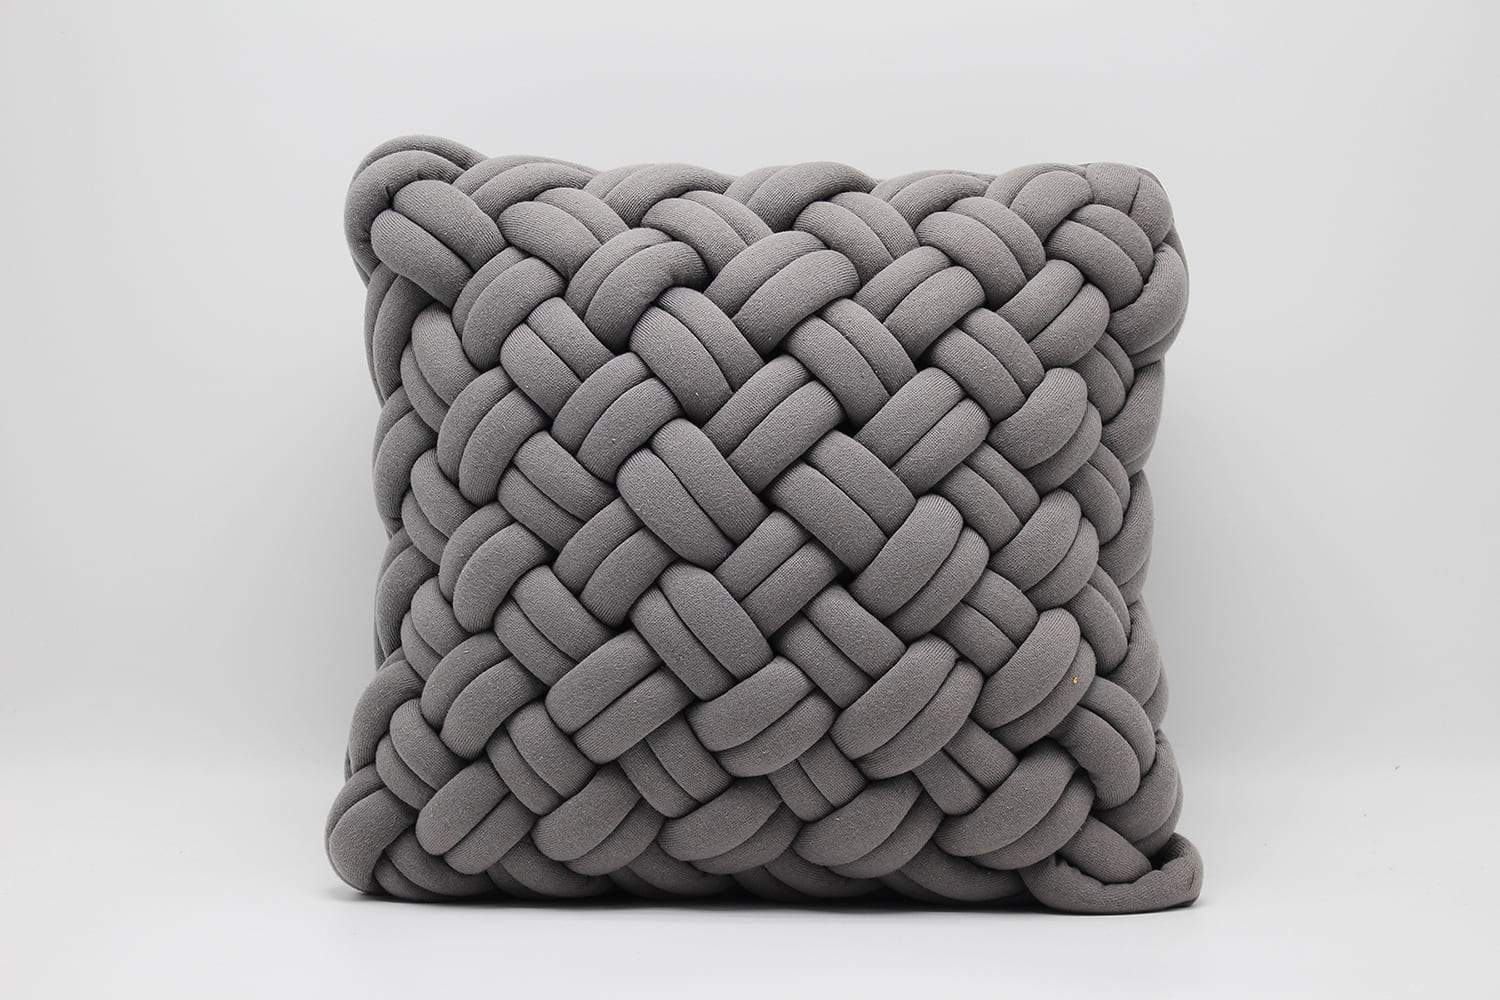 MEIRYO BEST GREY KNIT WEAVE CUSHIONS - ANGIE HOMES ANGIE HOMES